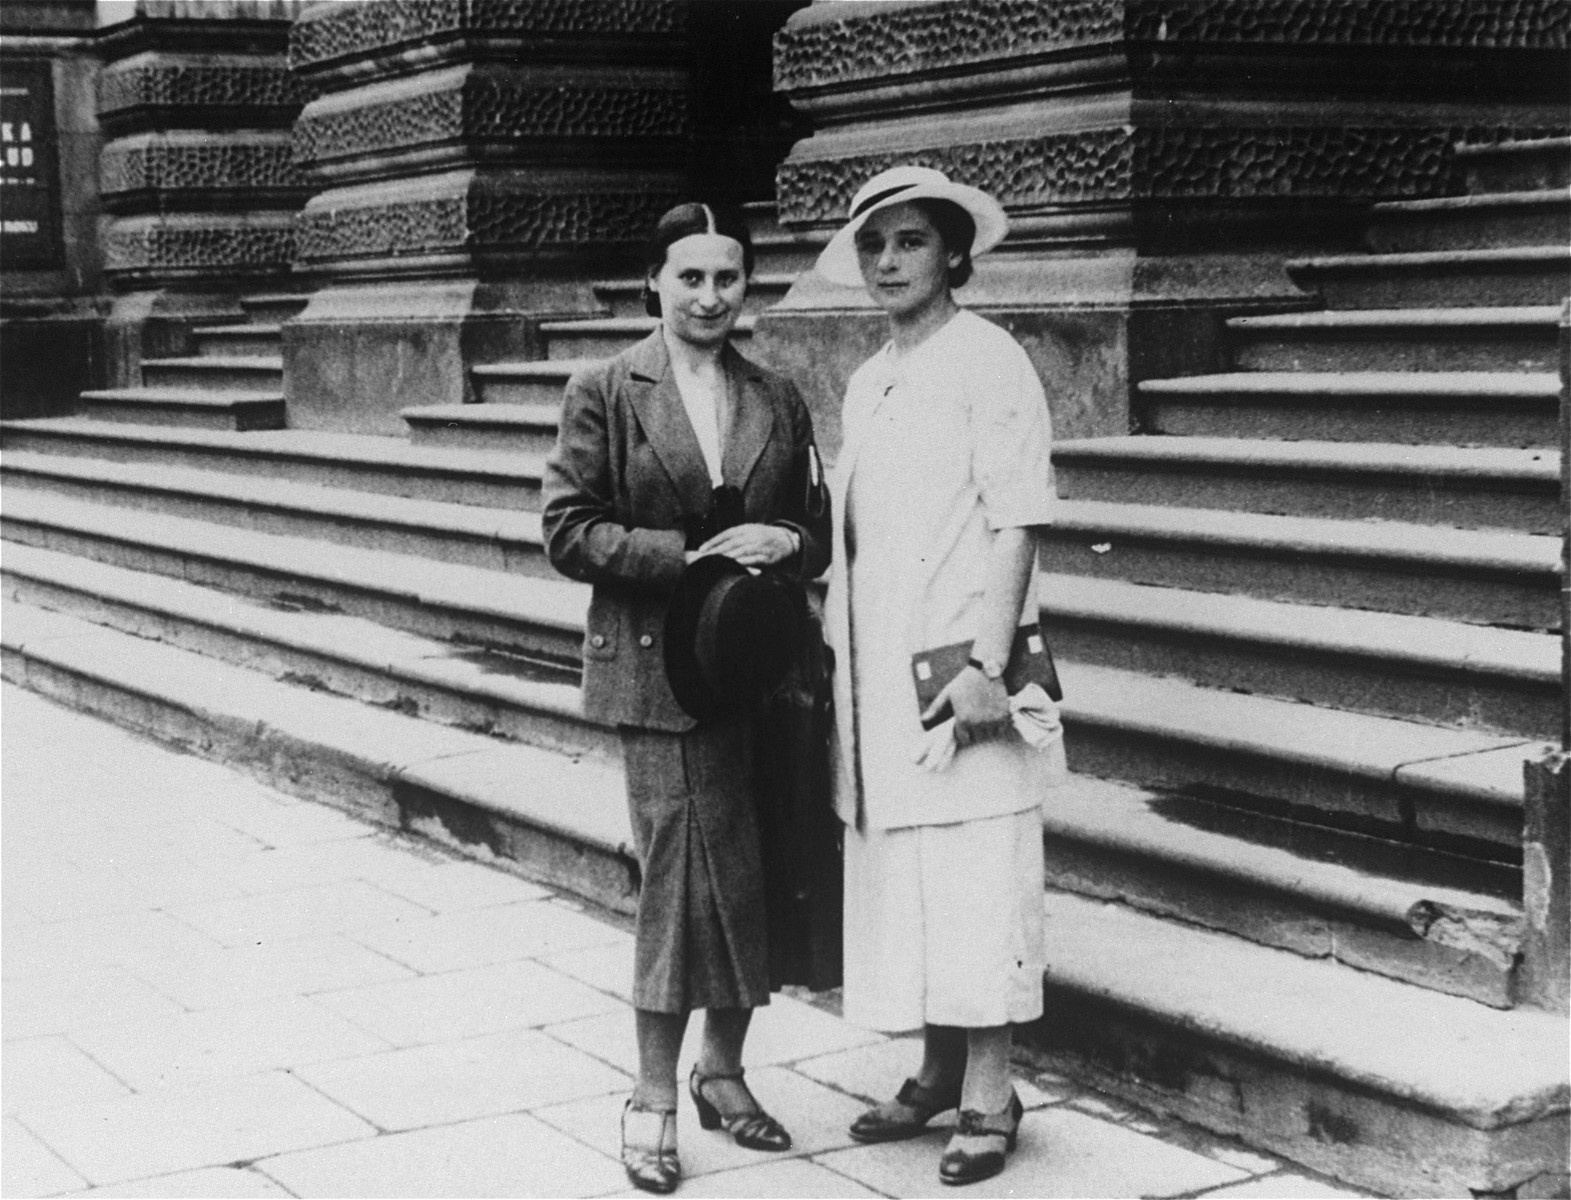 A young Jewish woman poses with a friend on the street in Warsaw, Poland.  Pictured is Yona Rudashevsky (right), the aunt of donor Cilia Rudashevsky.  Yona studied nursing in Vilna and then worked in a Jewish hospital in Warsaw.  In 1935 she immigrated to Palestine, where she worked as a nurse in the Belinson hospital.